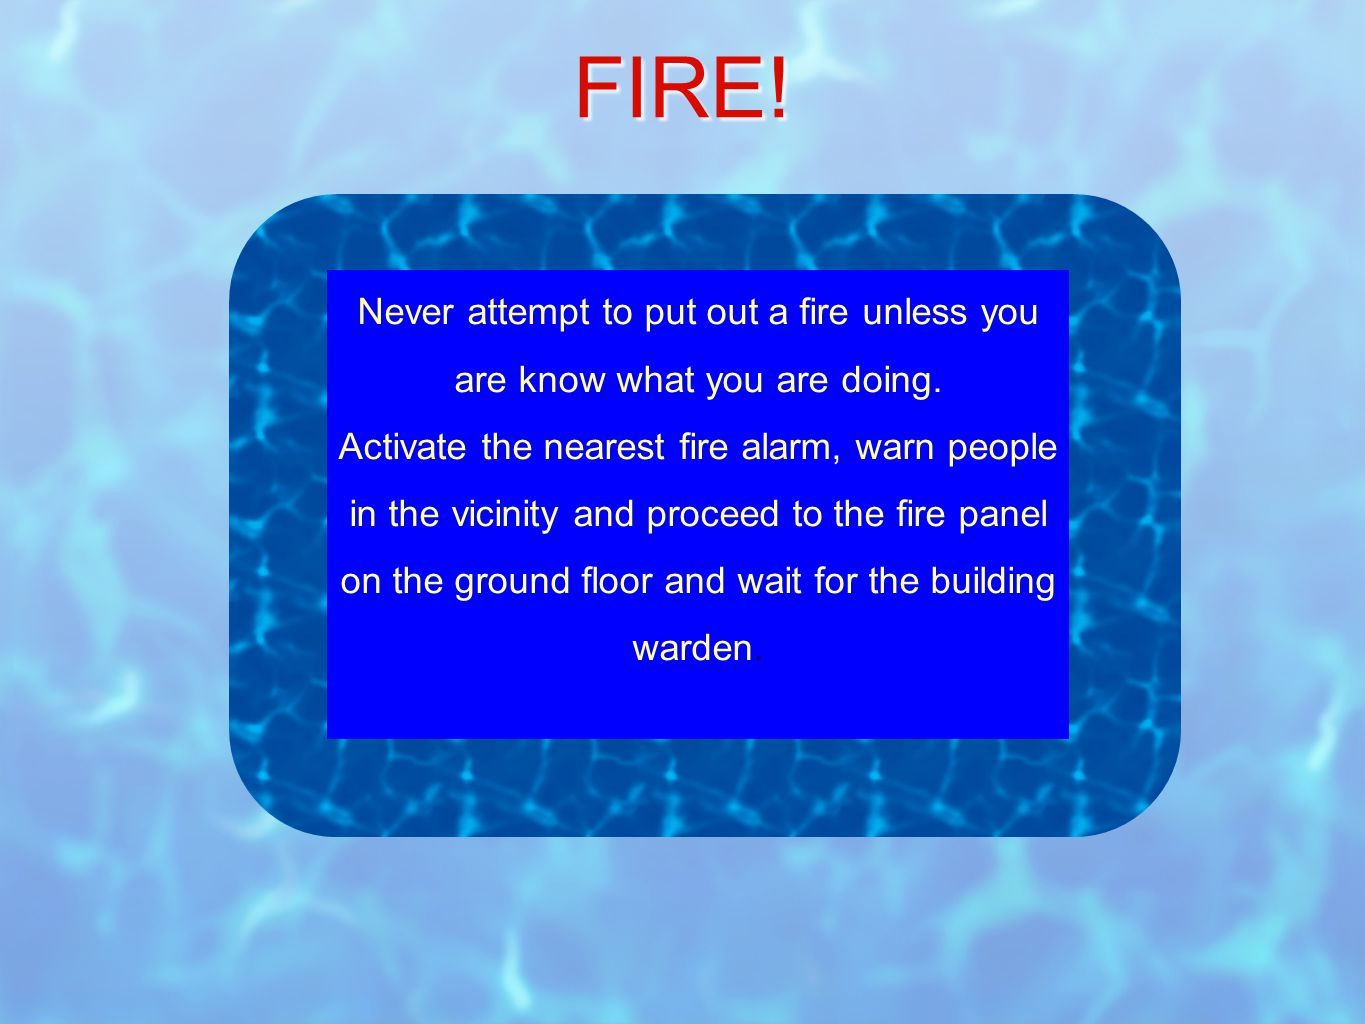 Never attempt to put out a fire unless you are know what you are doing.